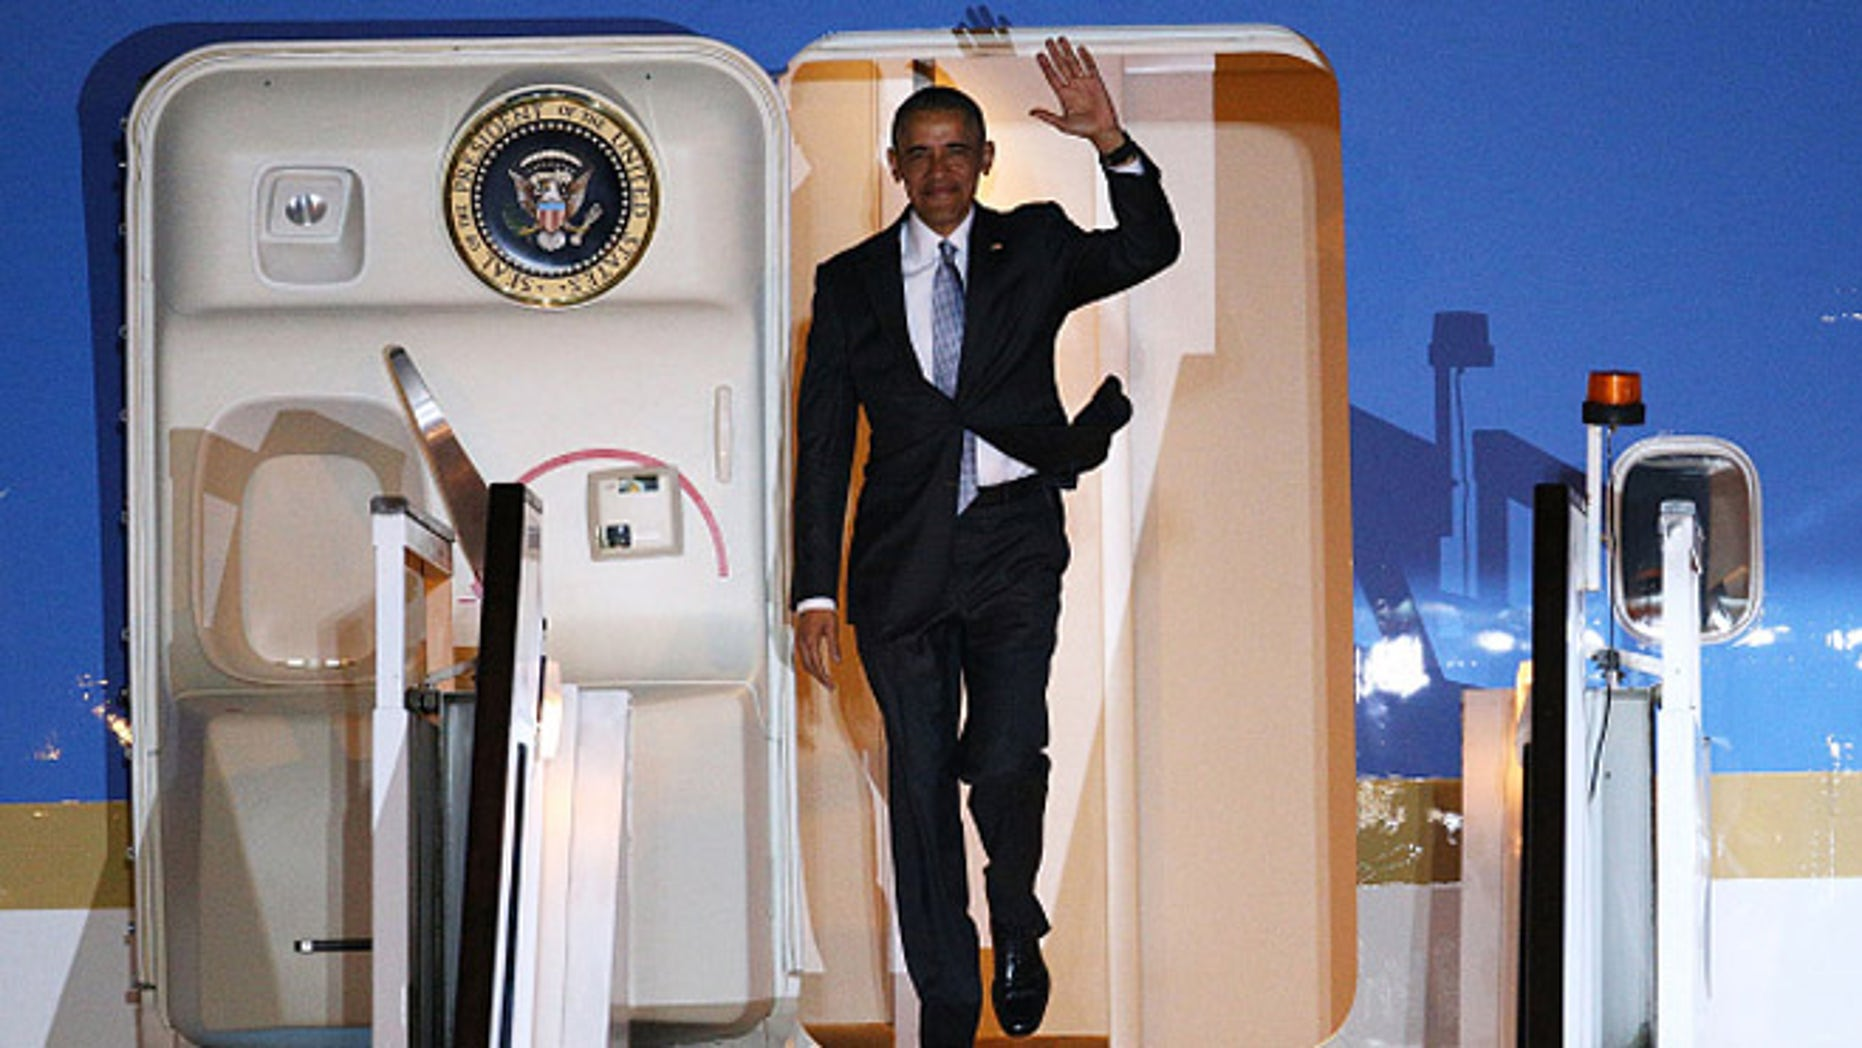 LONDON, ENGLAND - APRIL 21:  US President Barack Obama steps off Air Force One upon arrival at Stansted Airport on April 21, 2016 in London, England. The President is currently on a four day visit to the UK where he will have lunch with HM Queen Elizabeth II at Windsor Castle and dinner with Prince William and his wife Catherine, Duchess of Cambridge at Kensington Palace. Mr Obama will visit 10 Downing Street on Friday afternoon where he is to hold a joint press conference with British Prime Minister David Cameron and is expected to make his case for the UK to remain inside the European Union.  (Photo by Dan Kitwood/Getty Images)